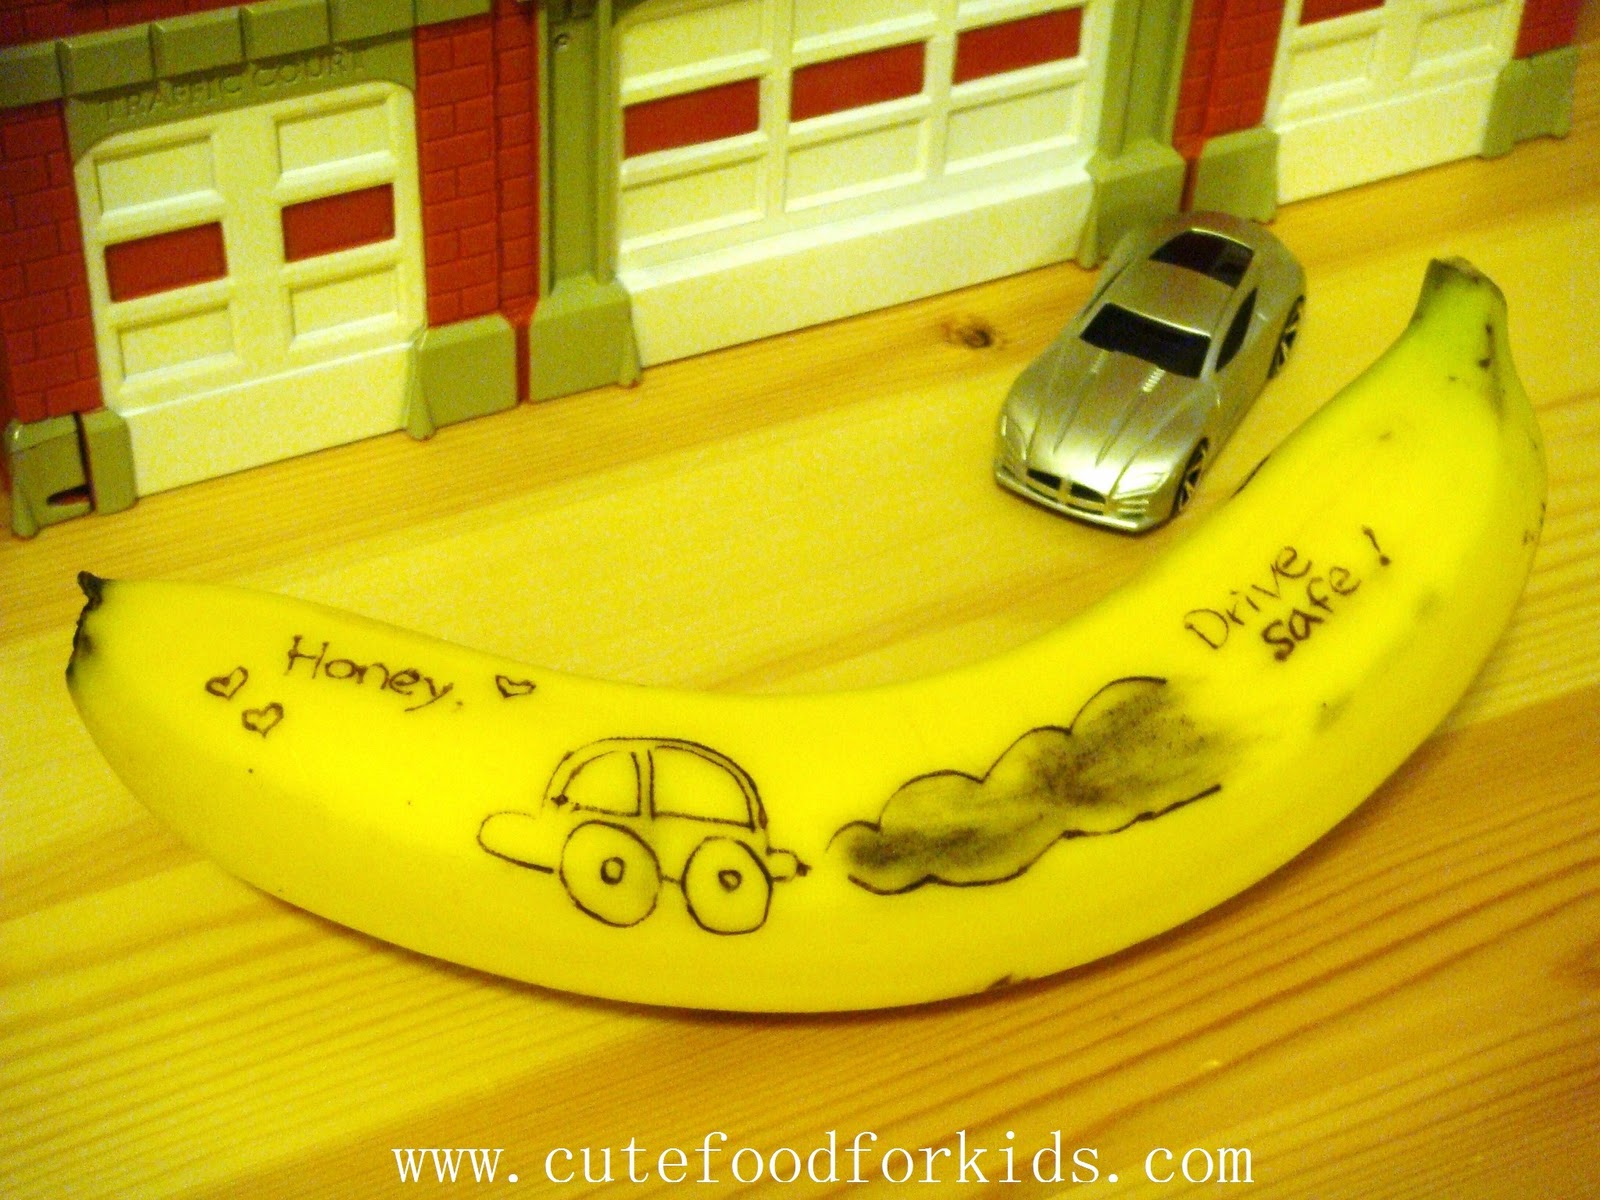 Message Banana